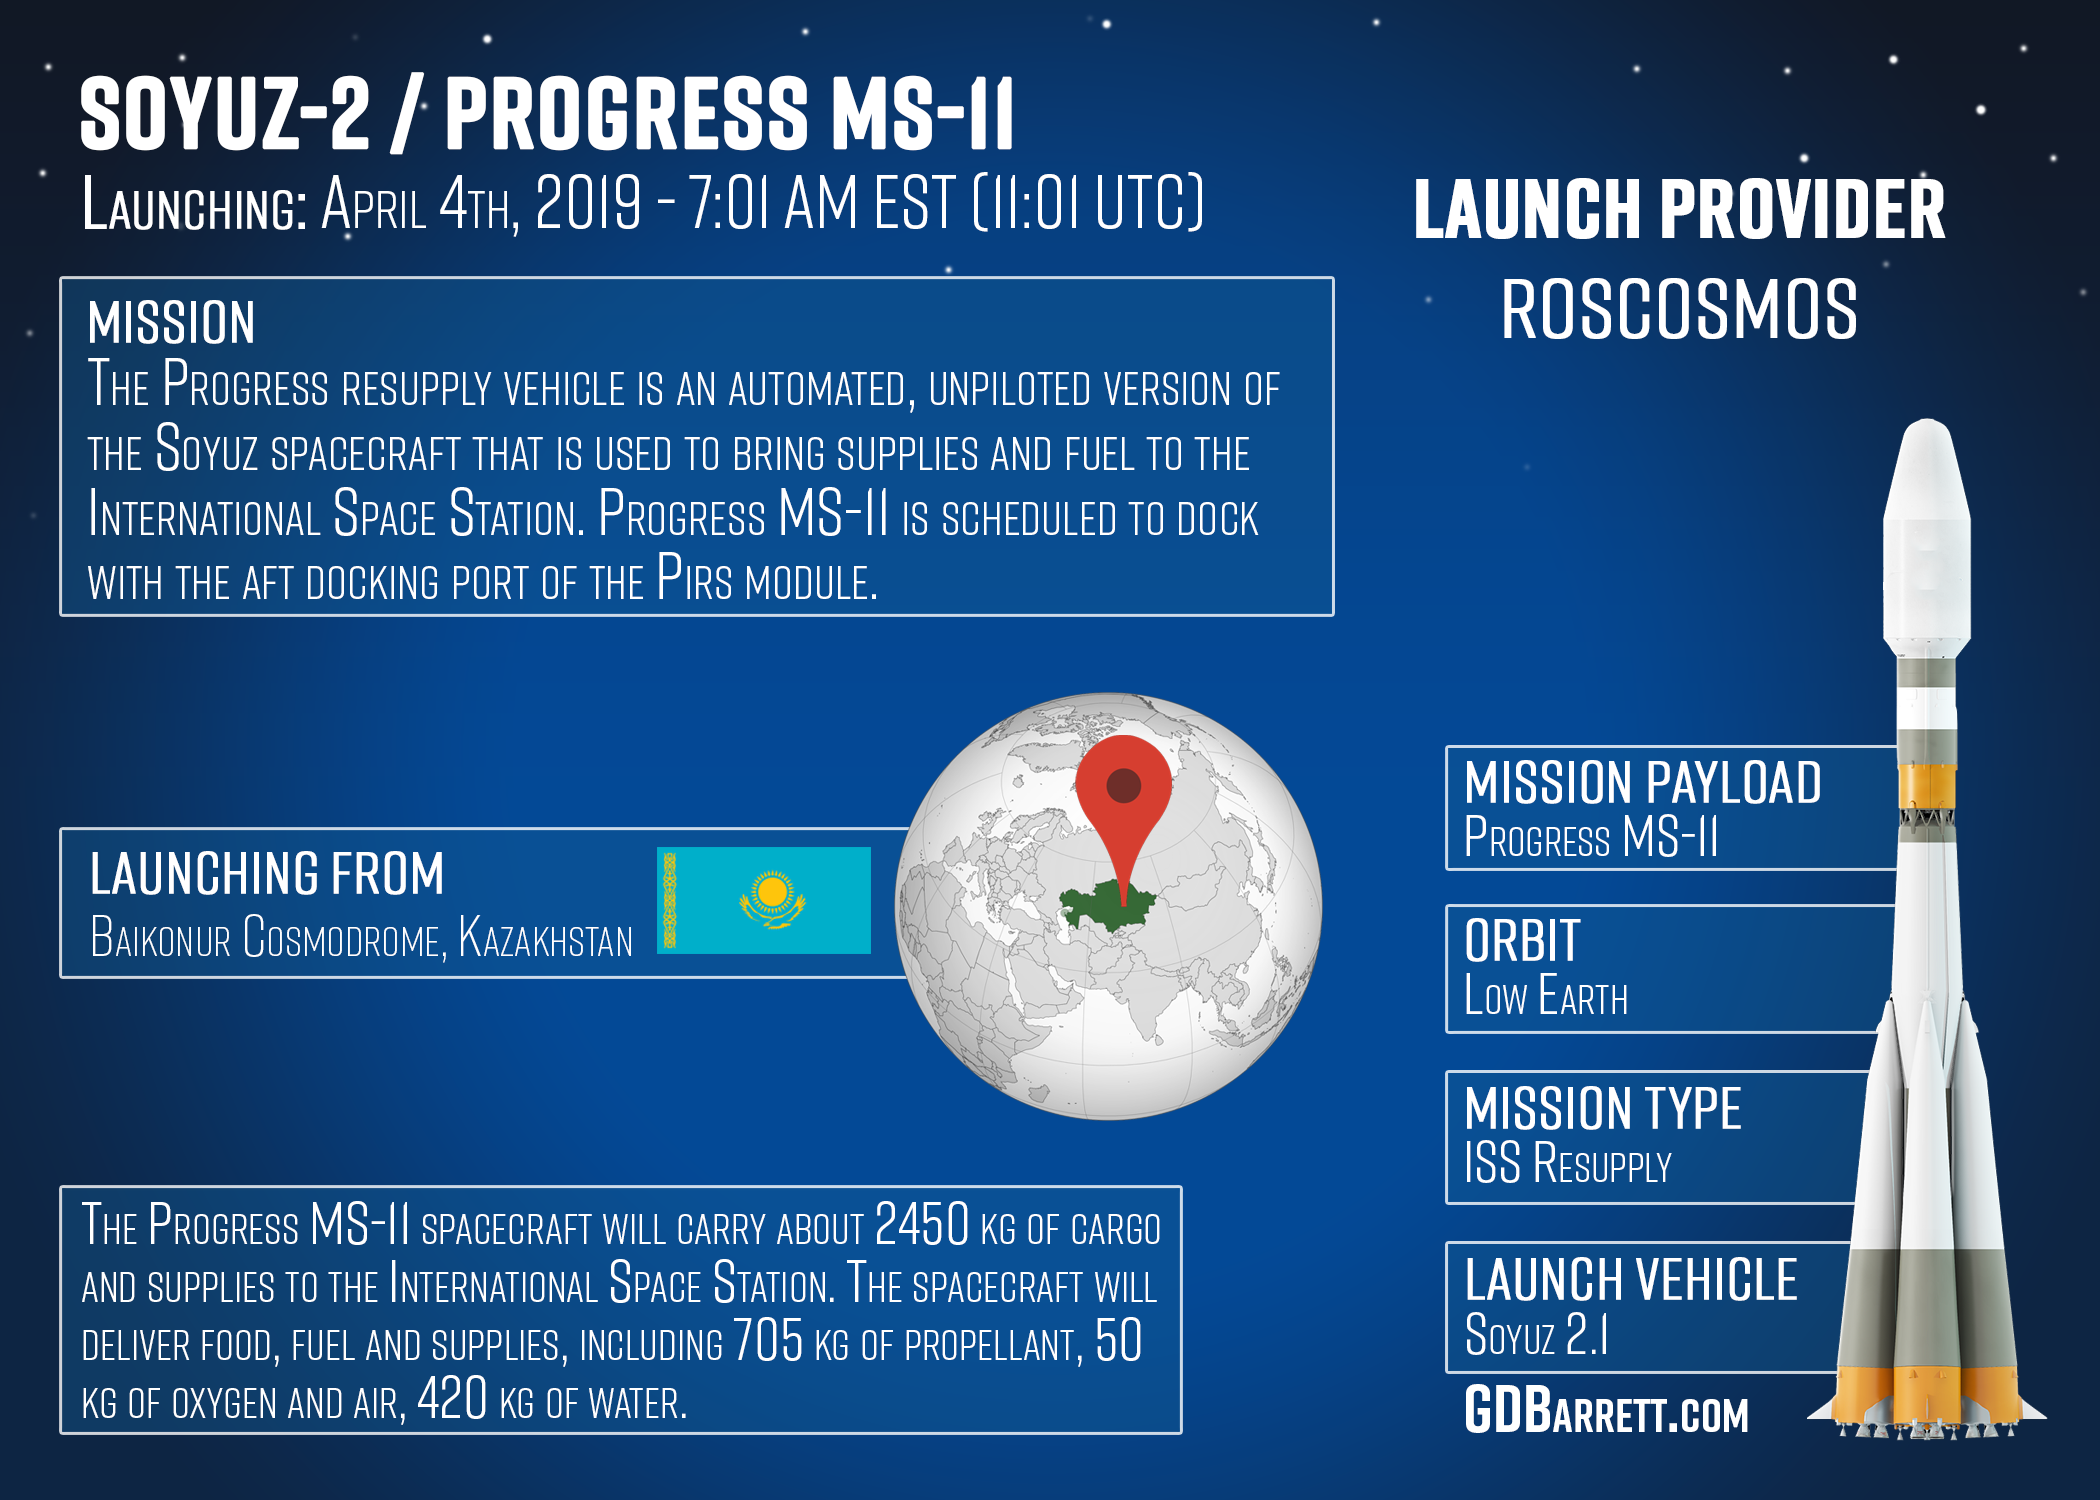 ROSCOSMOS Soyuz Progress MS-11